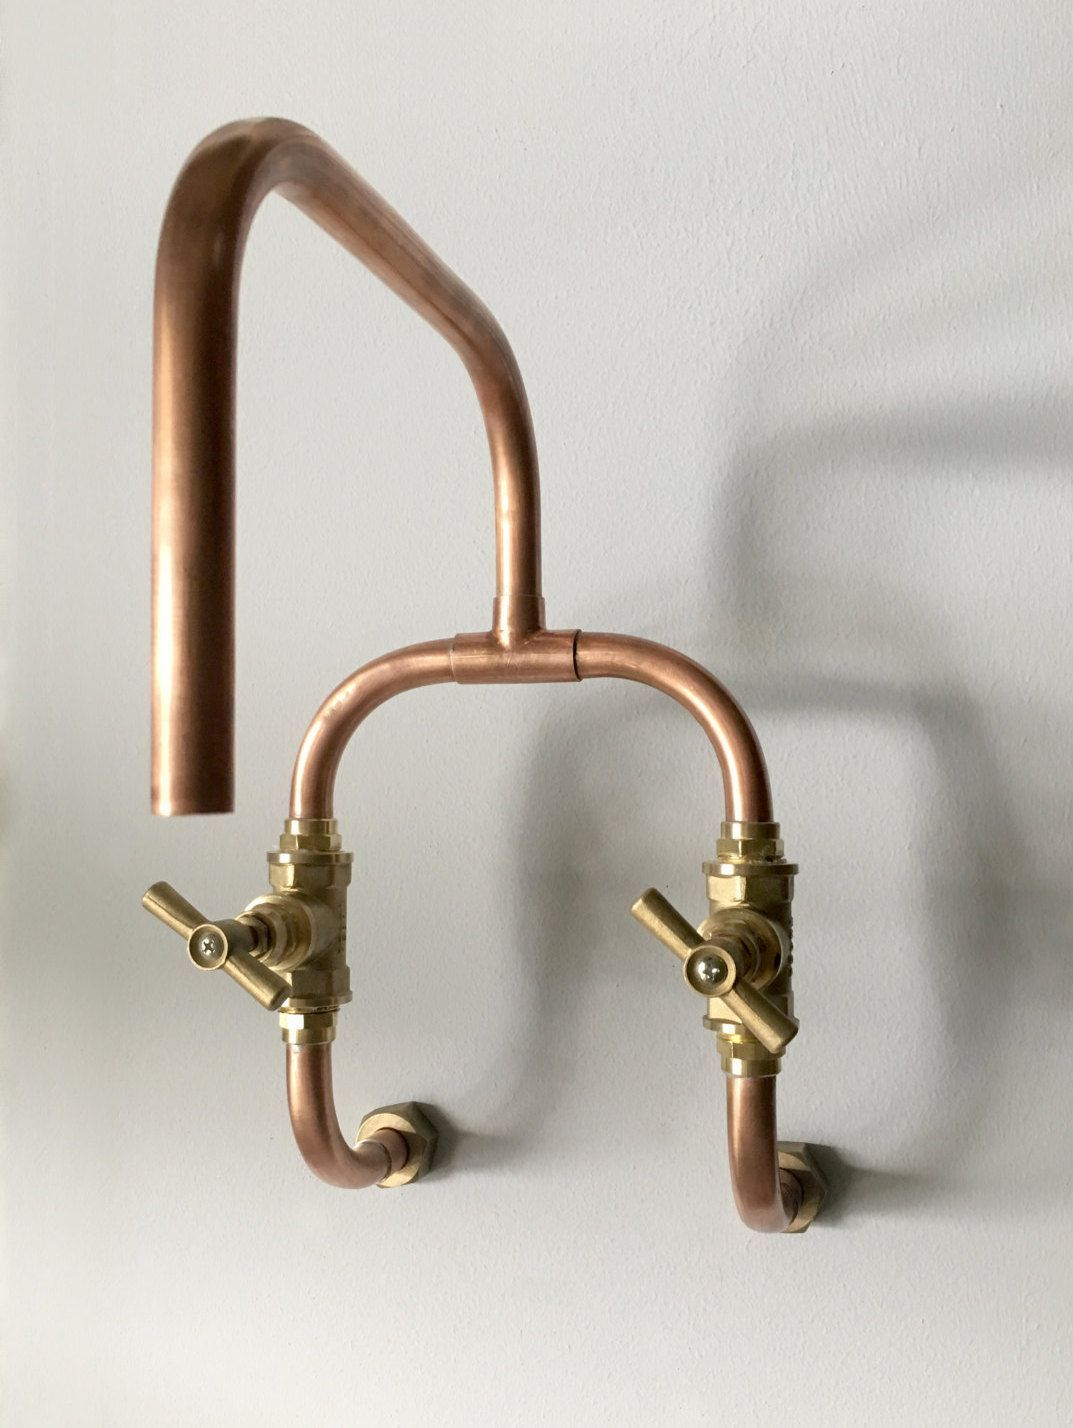 165 Etsy Too Nuts For Discounts And Campaigns Please Visit Www Switchrange Com This Handmade Wall Mount Mixer T Copper Faucet Copper Bathroom Copper Taps